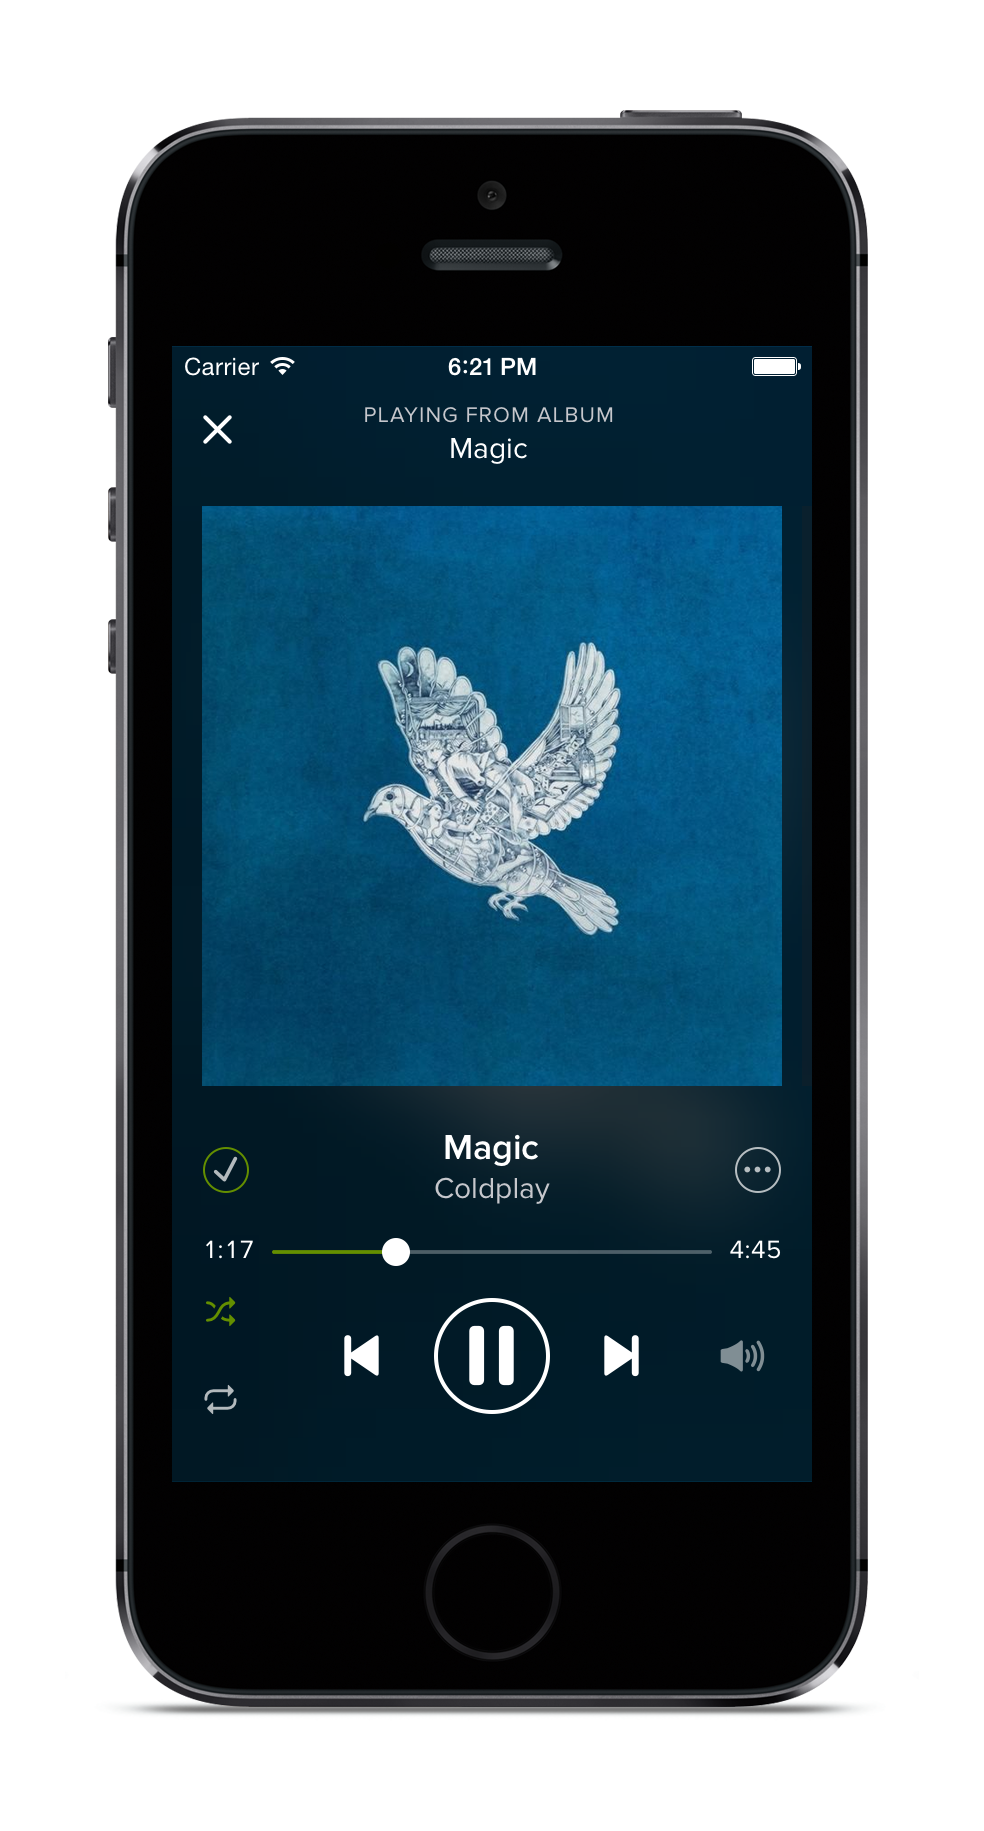 Spotify's biggest redesign ever brings long-awaited Collection view